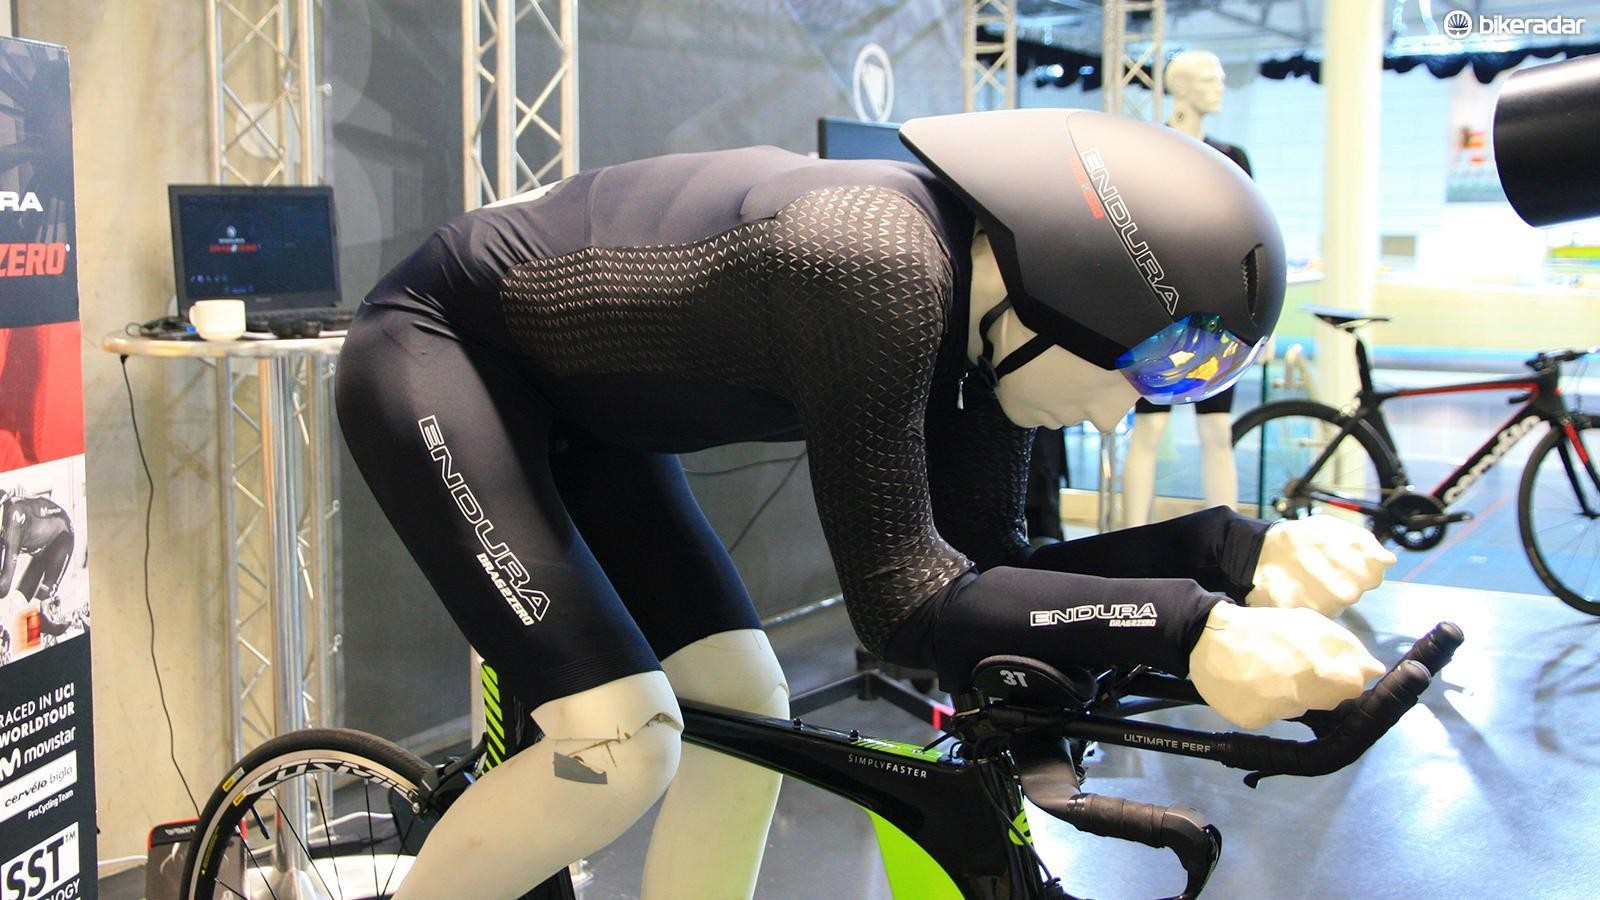 Endura's Drag2Zero speed suit is also banned under the new regulations